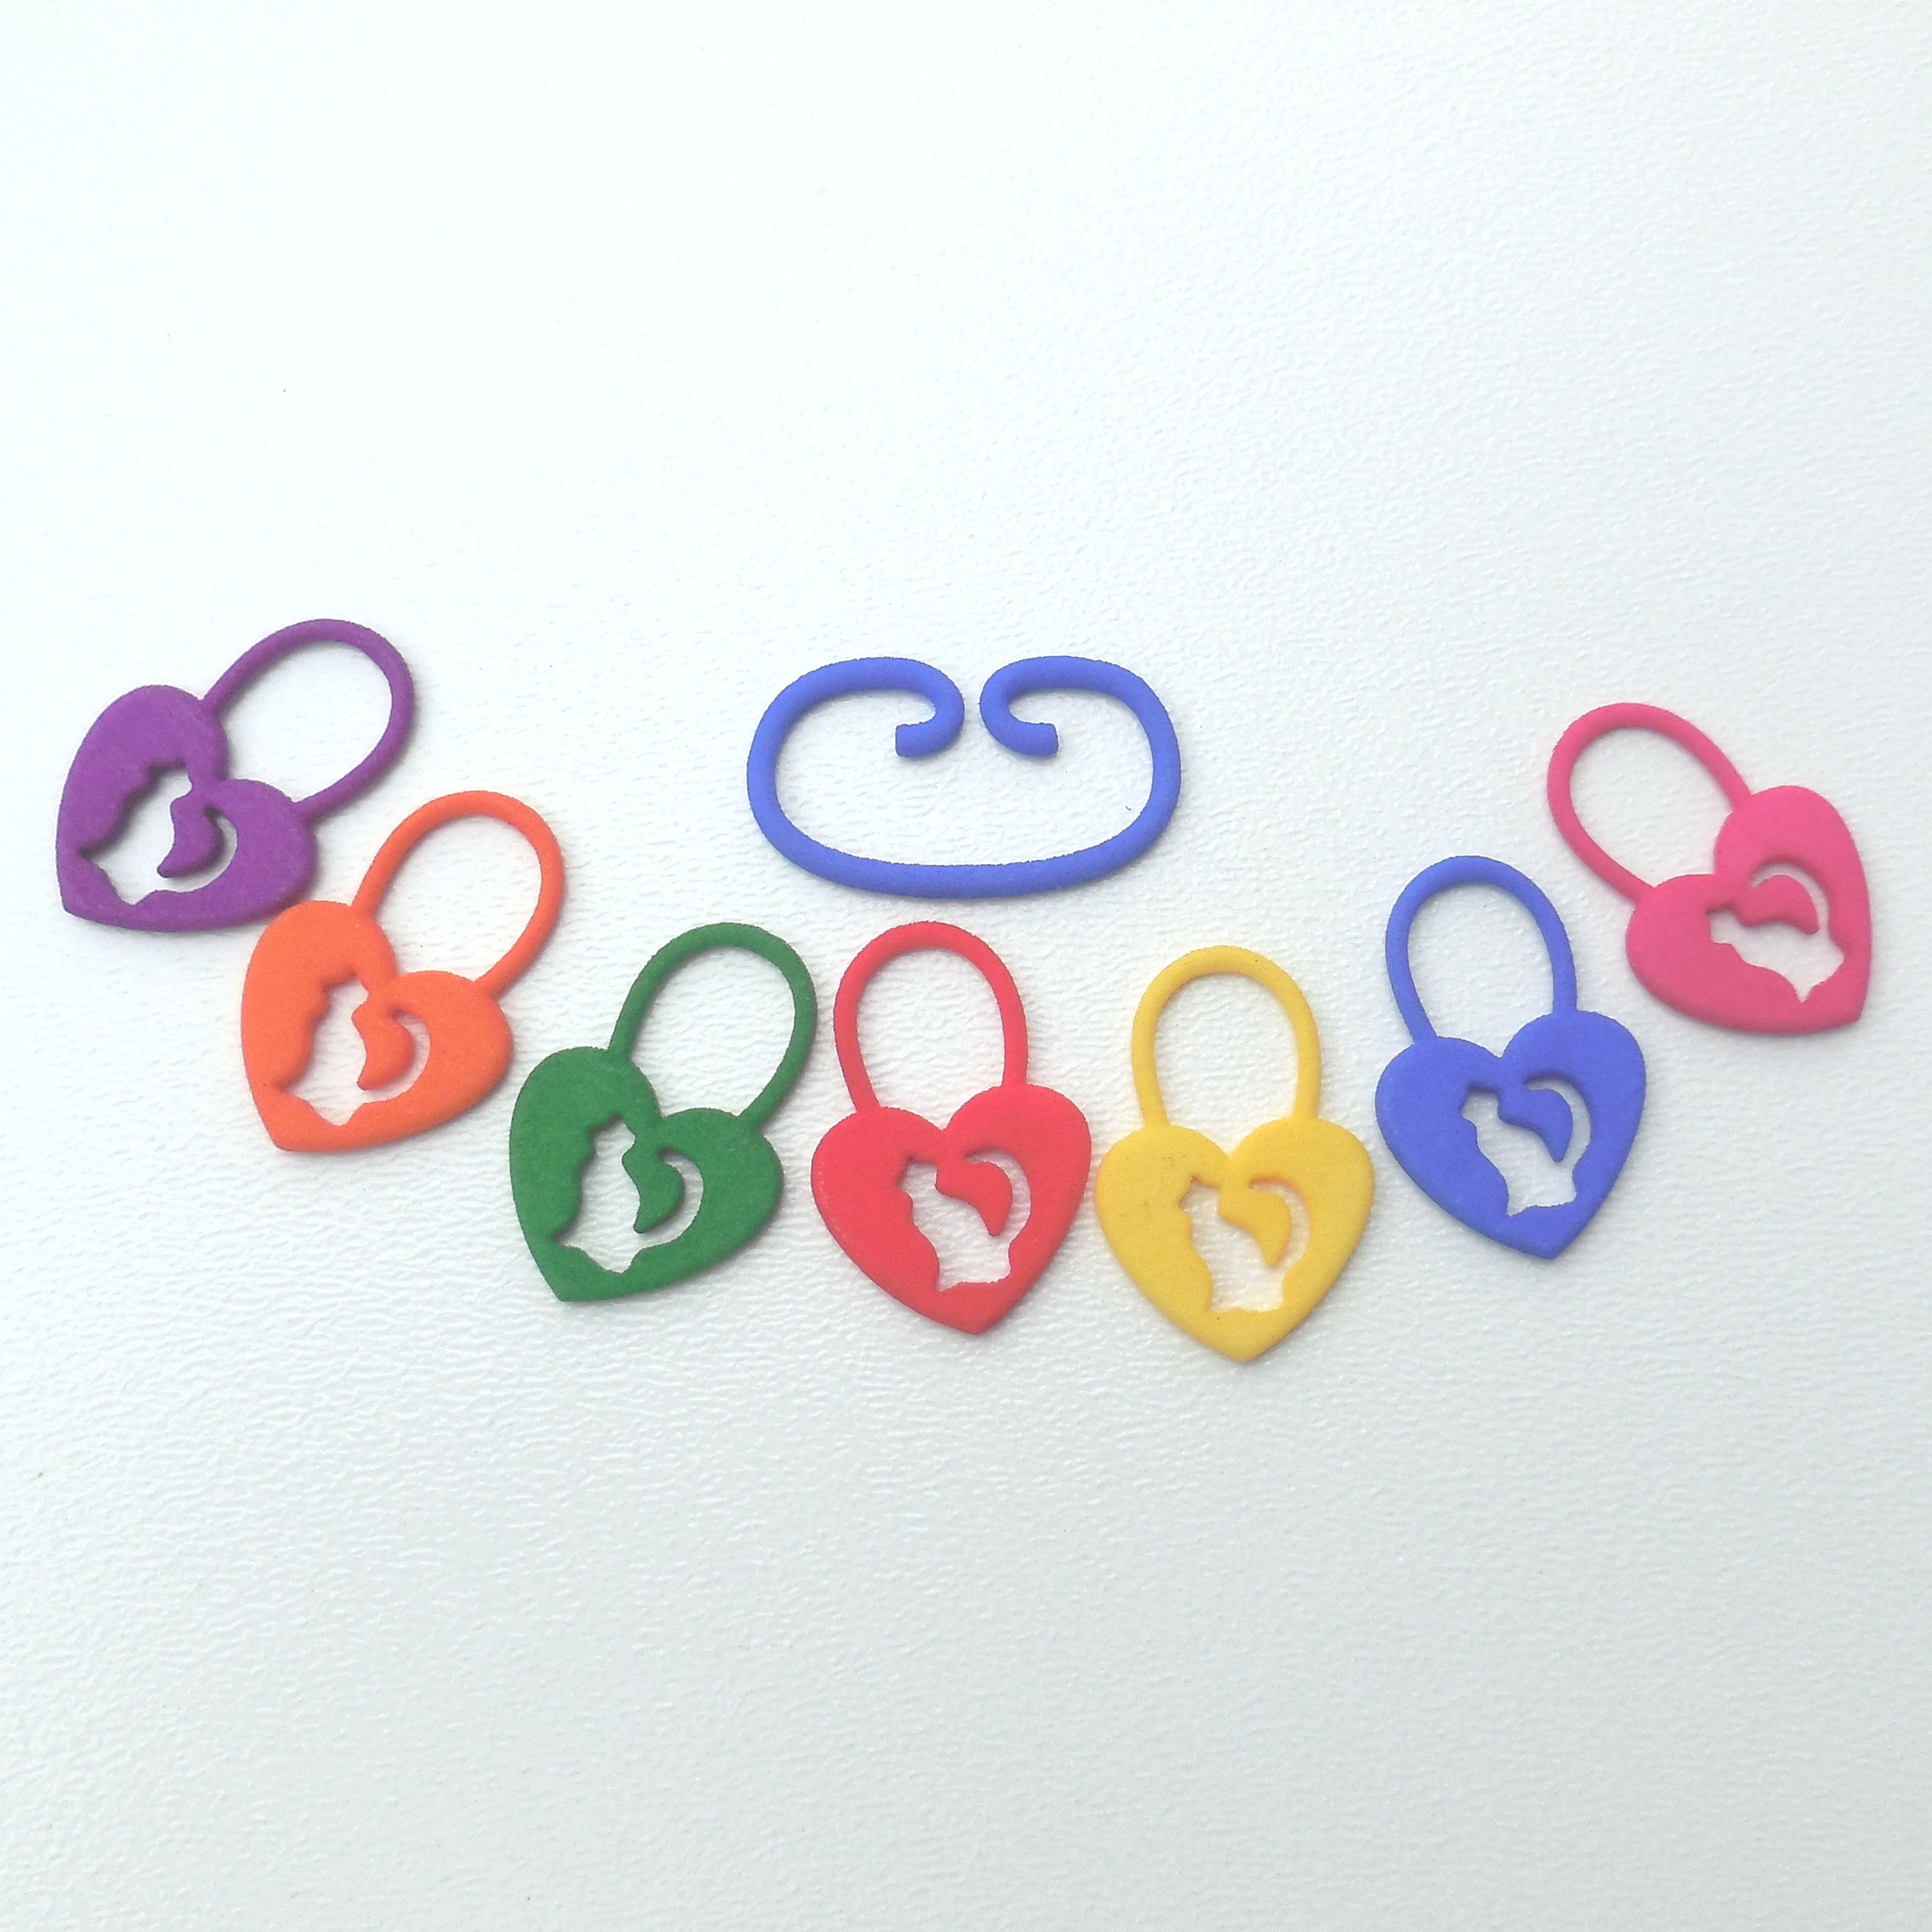 Stitch Markers added to the Etsy Shop